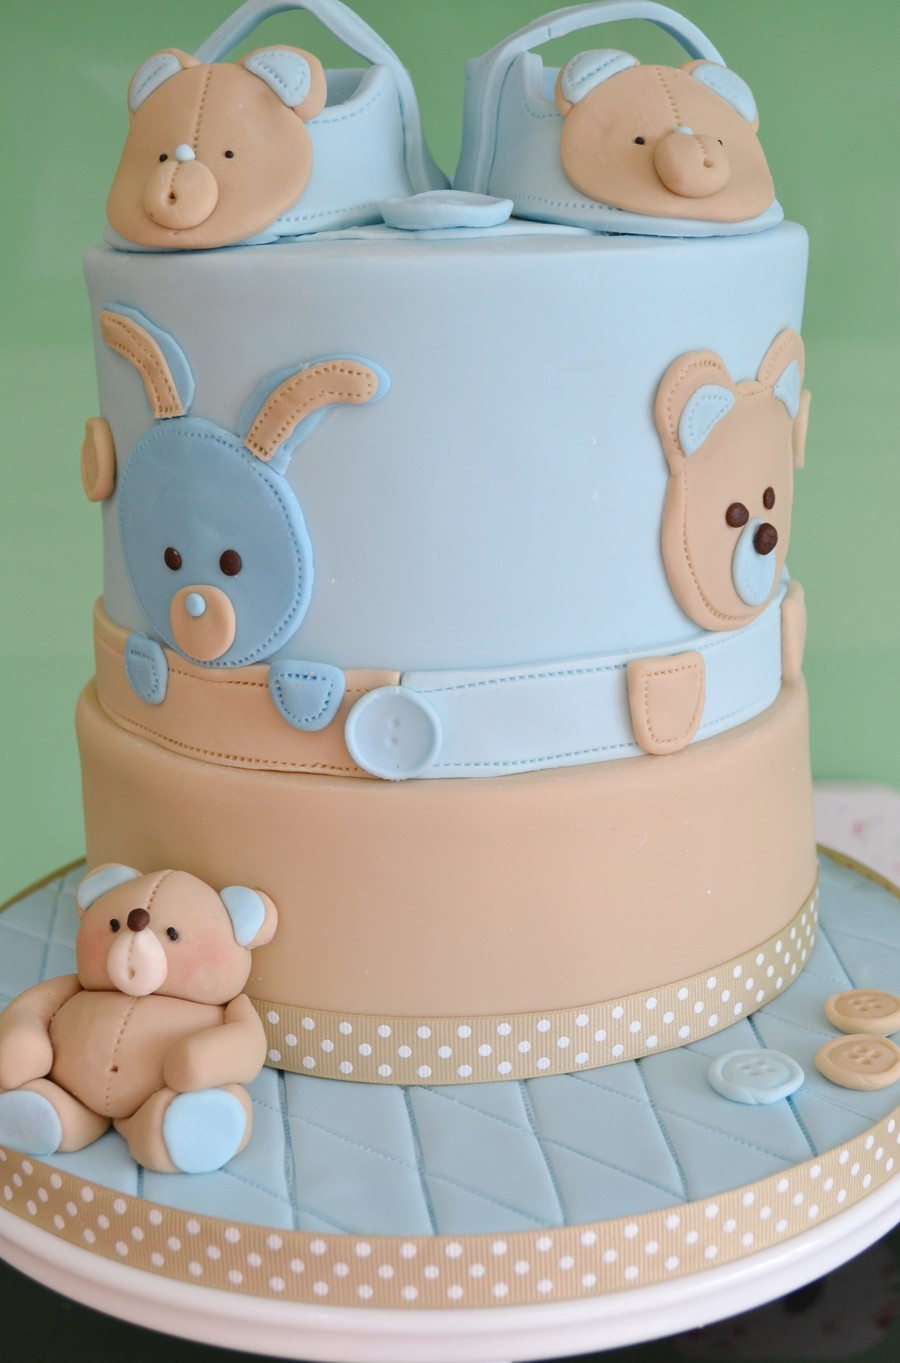 Goldilocks Cake Design For Christening : Baby Boy Christening Cake With Matching Cupcakes Inspired ...